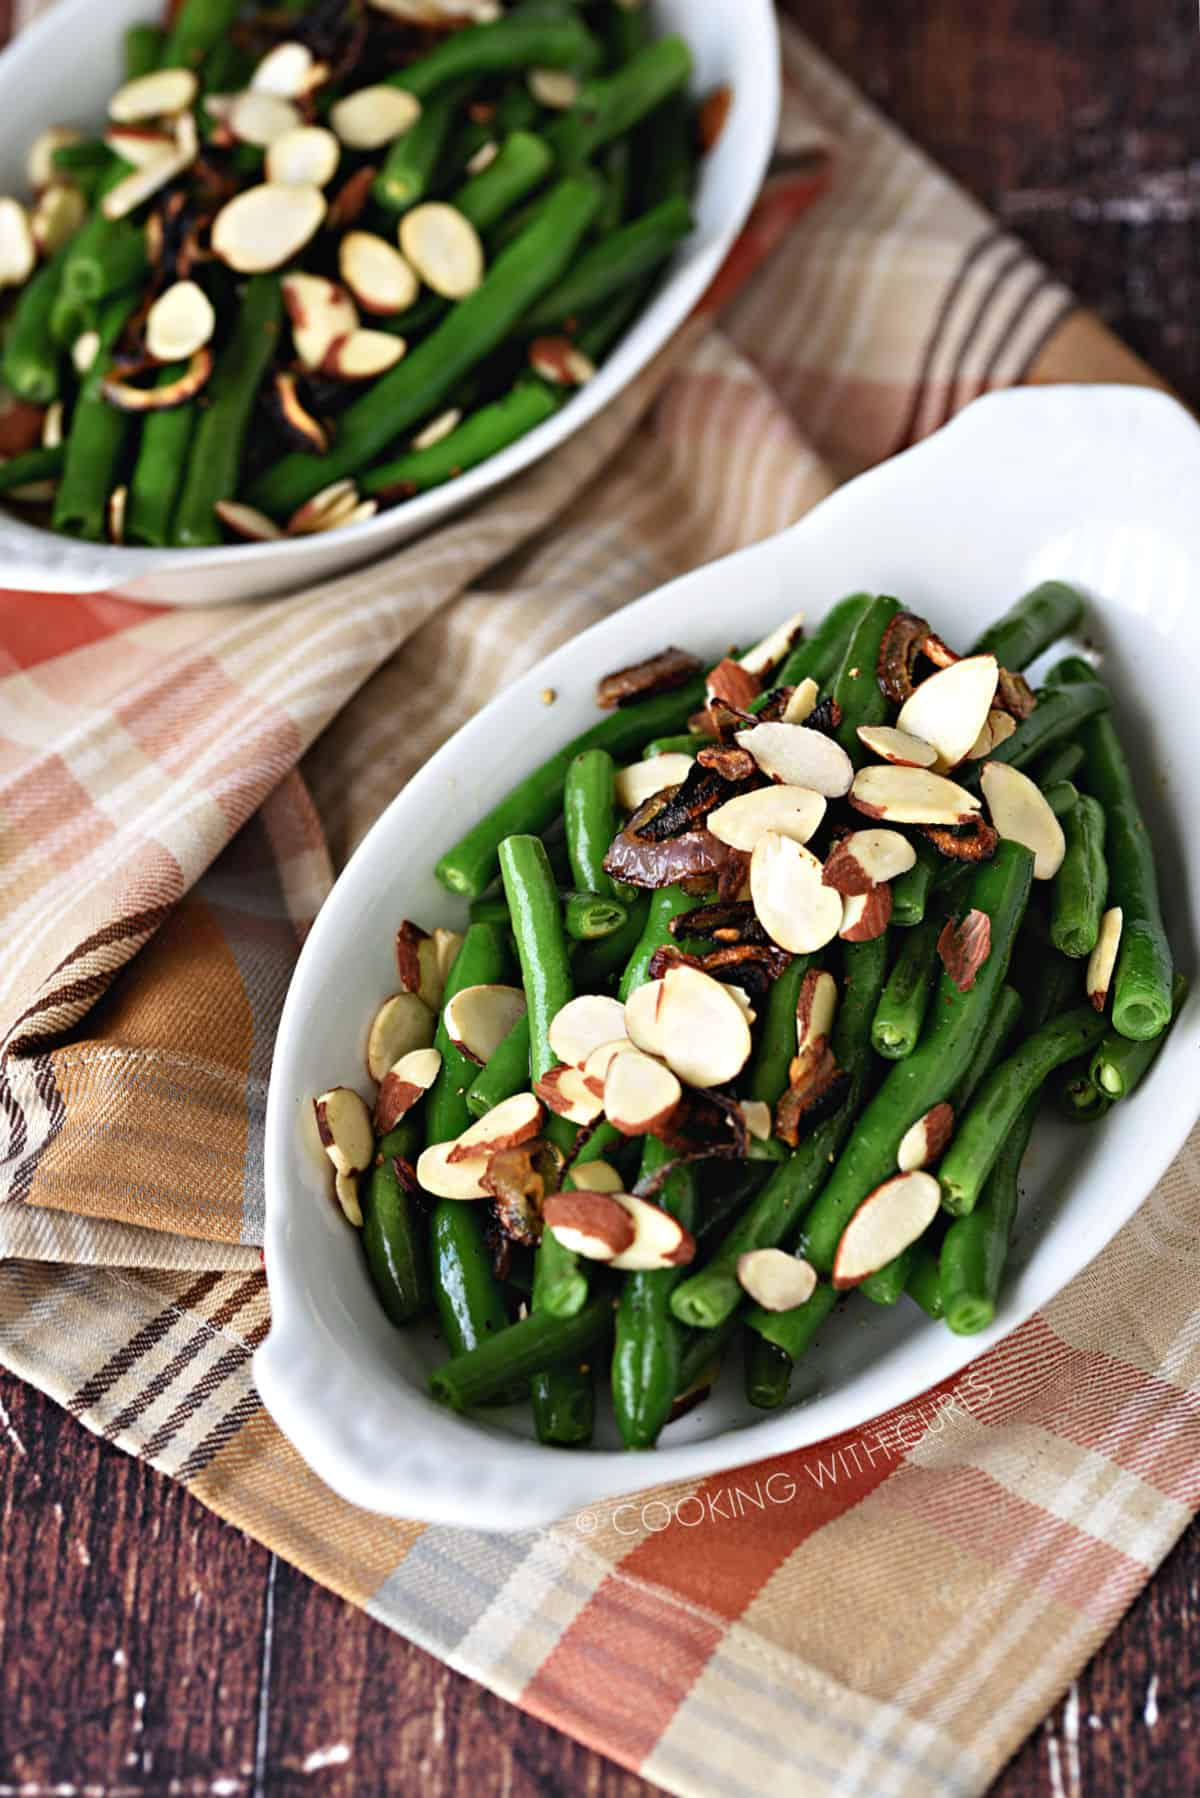 two white au gratin dishes sitting on a fall plaid napkin with green beans, shallots and sliced almonds on top.